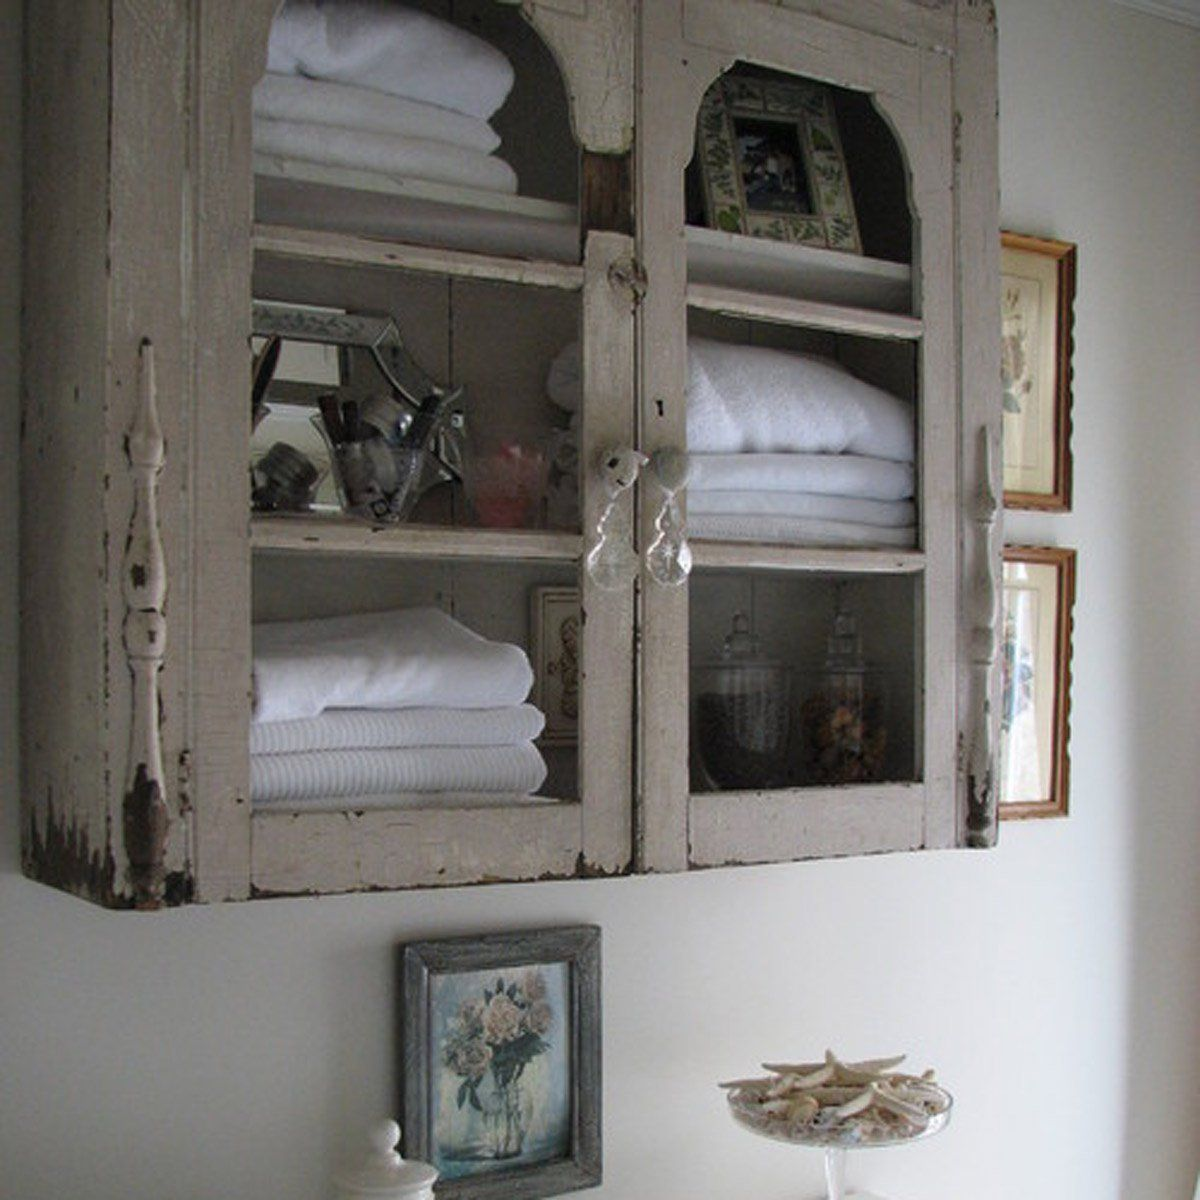 8 Ways To Reuse Your Old Kitchen Cabinets Shabby Chic Bathroom Shelves Over Toilet Bathroom Storage Over Toilet [ 1200 x 1200 Pixel ]